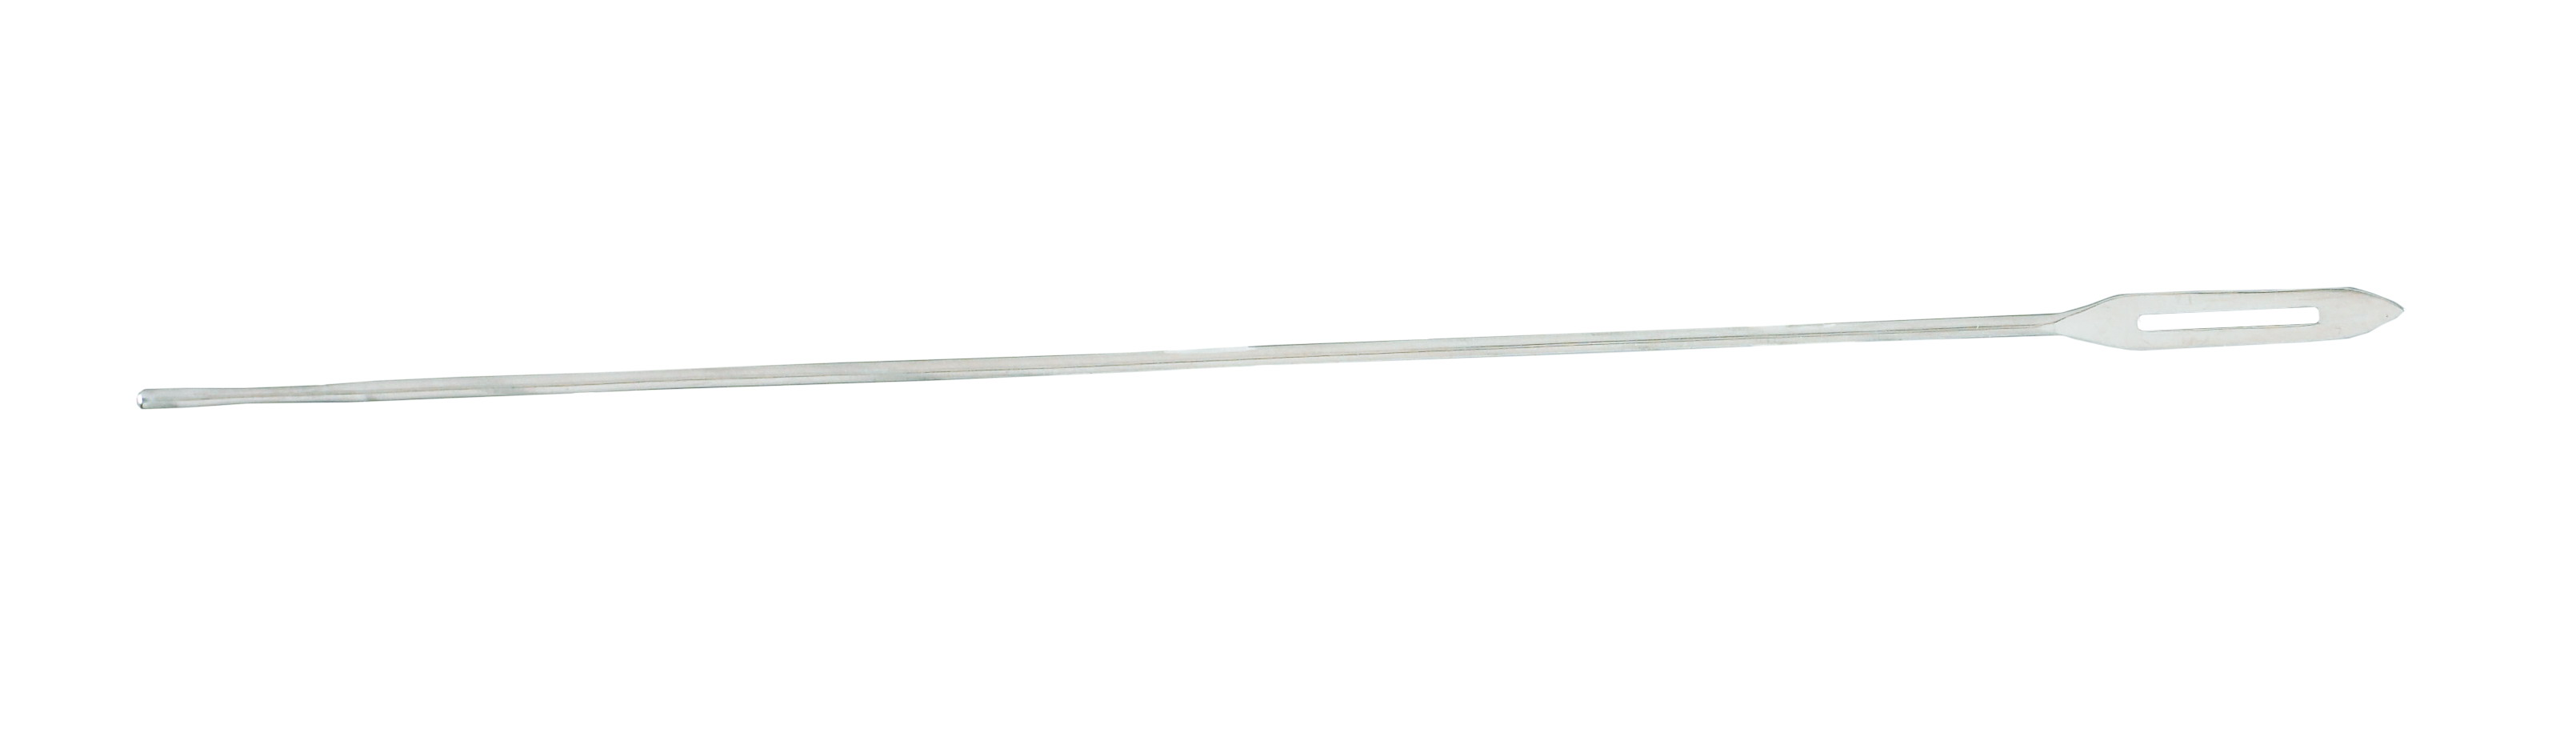 miltex-probes-with-eye-malleable-8-203-cm-stainless-10-32-ss-miltex.jpg